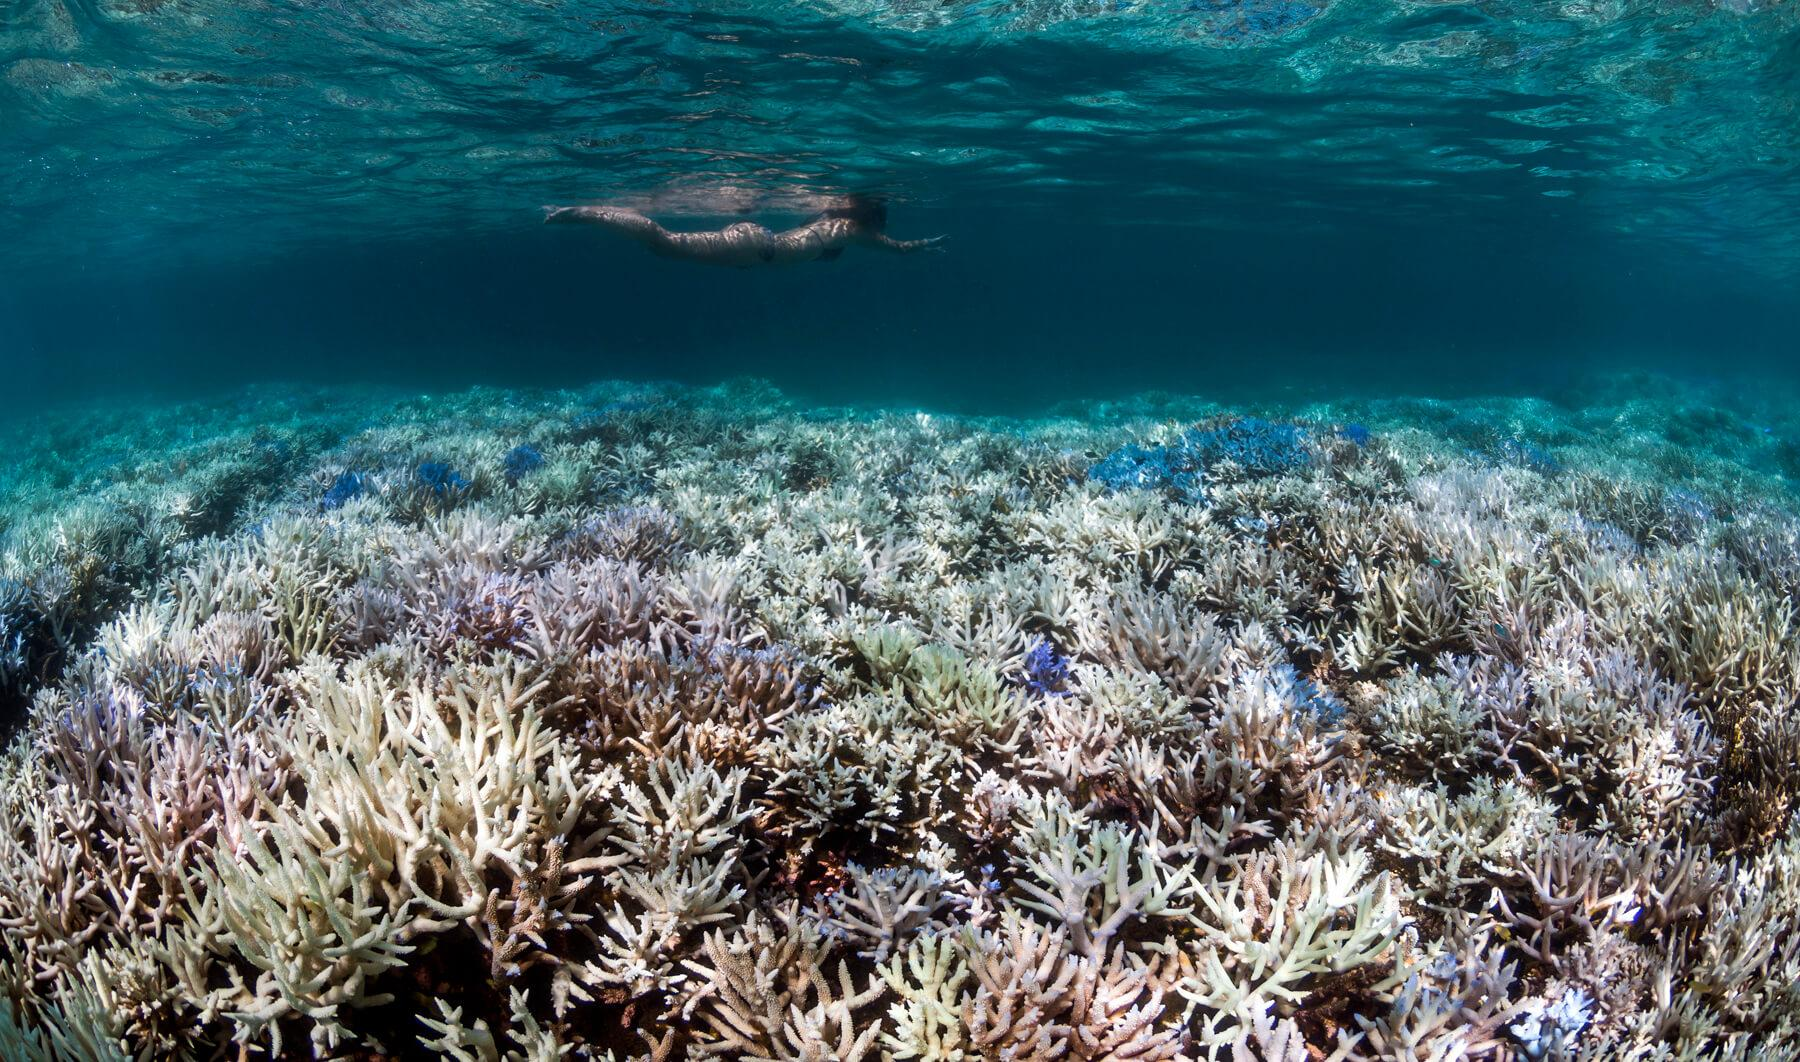 Chemicals in sunscreen make corals more susceptible to bleaching. © The Ocean Agency